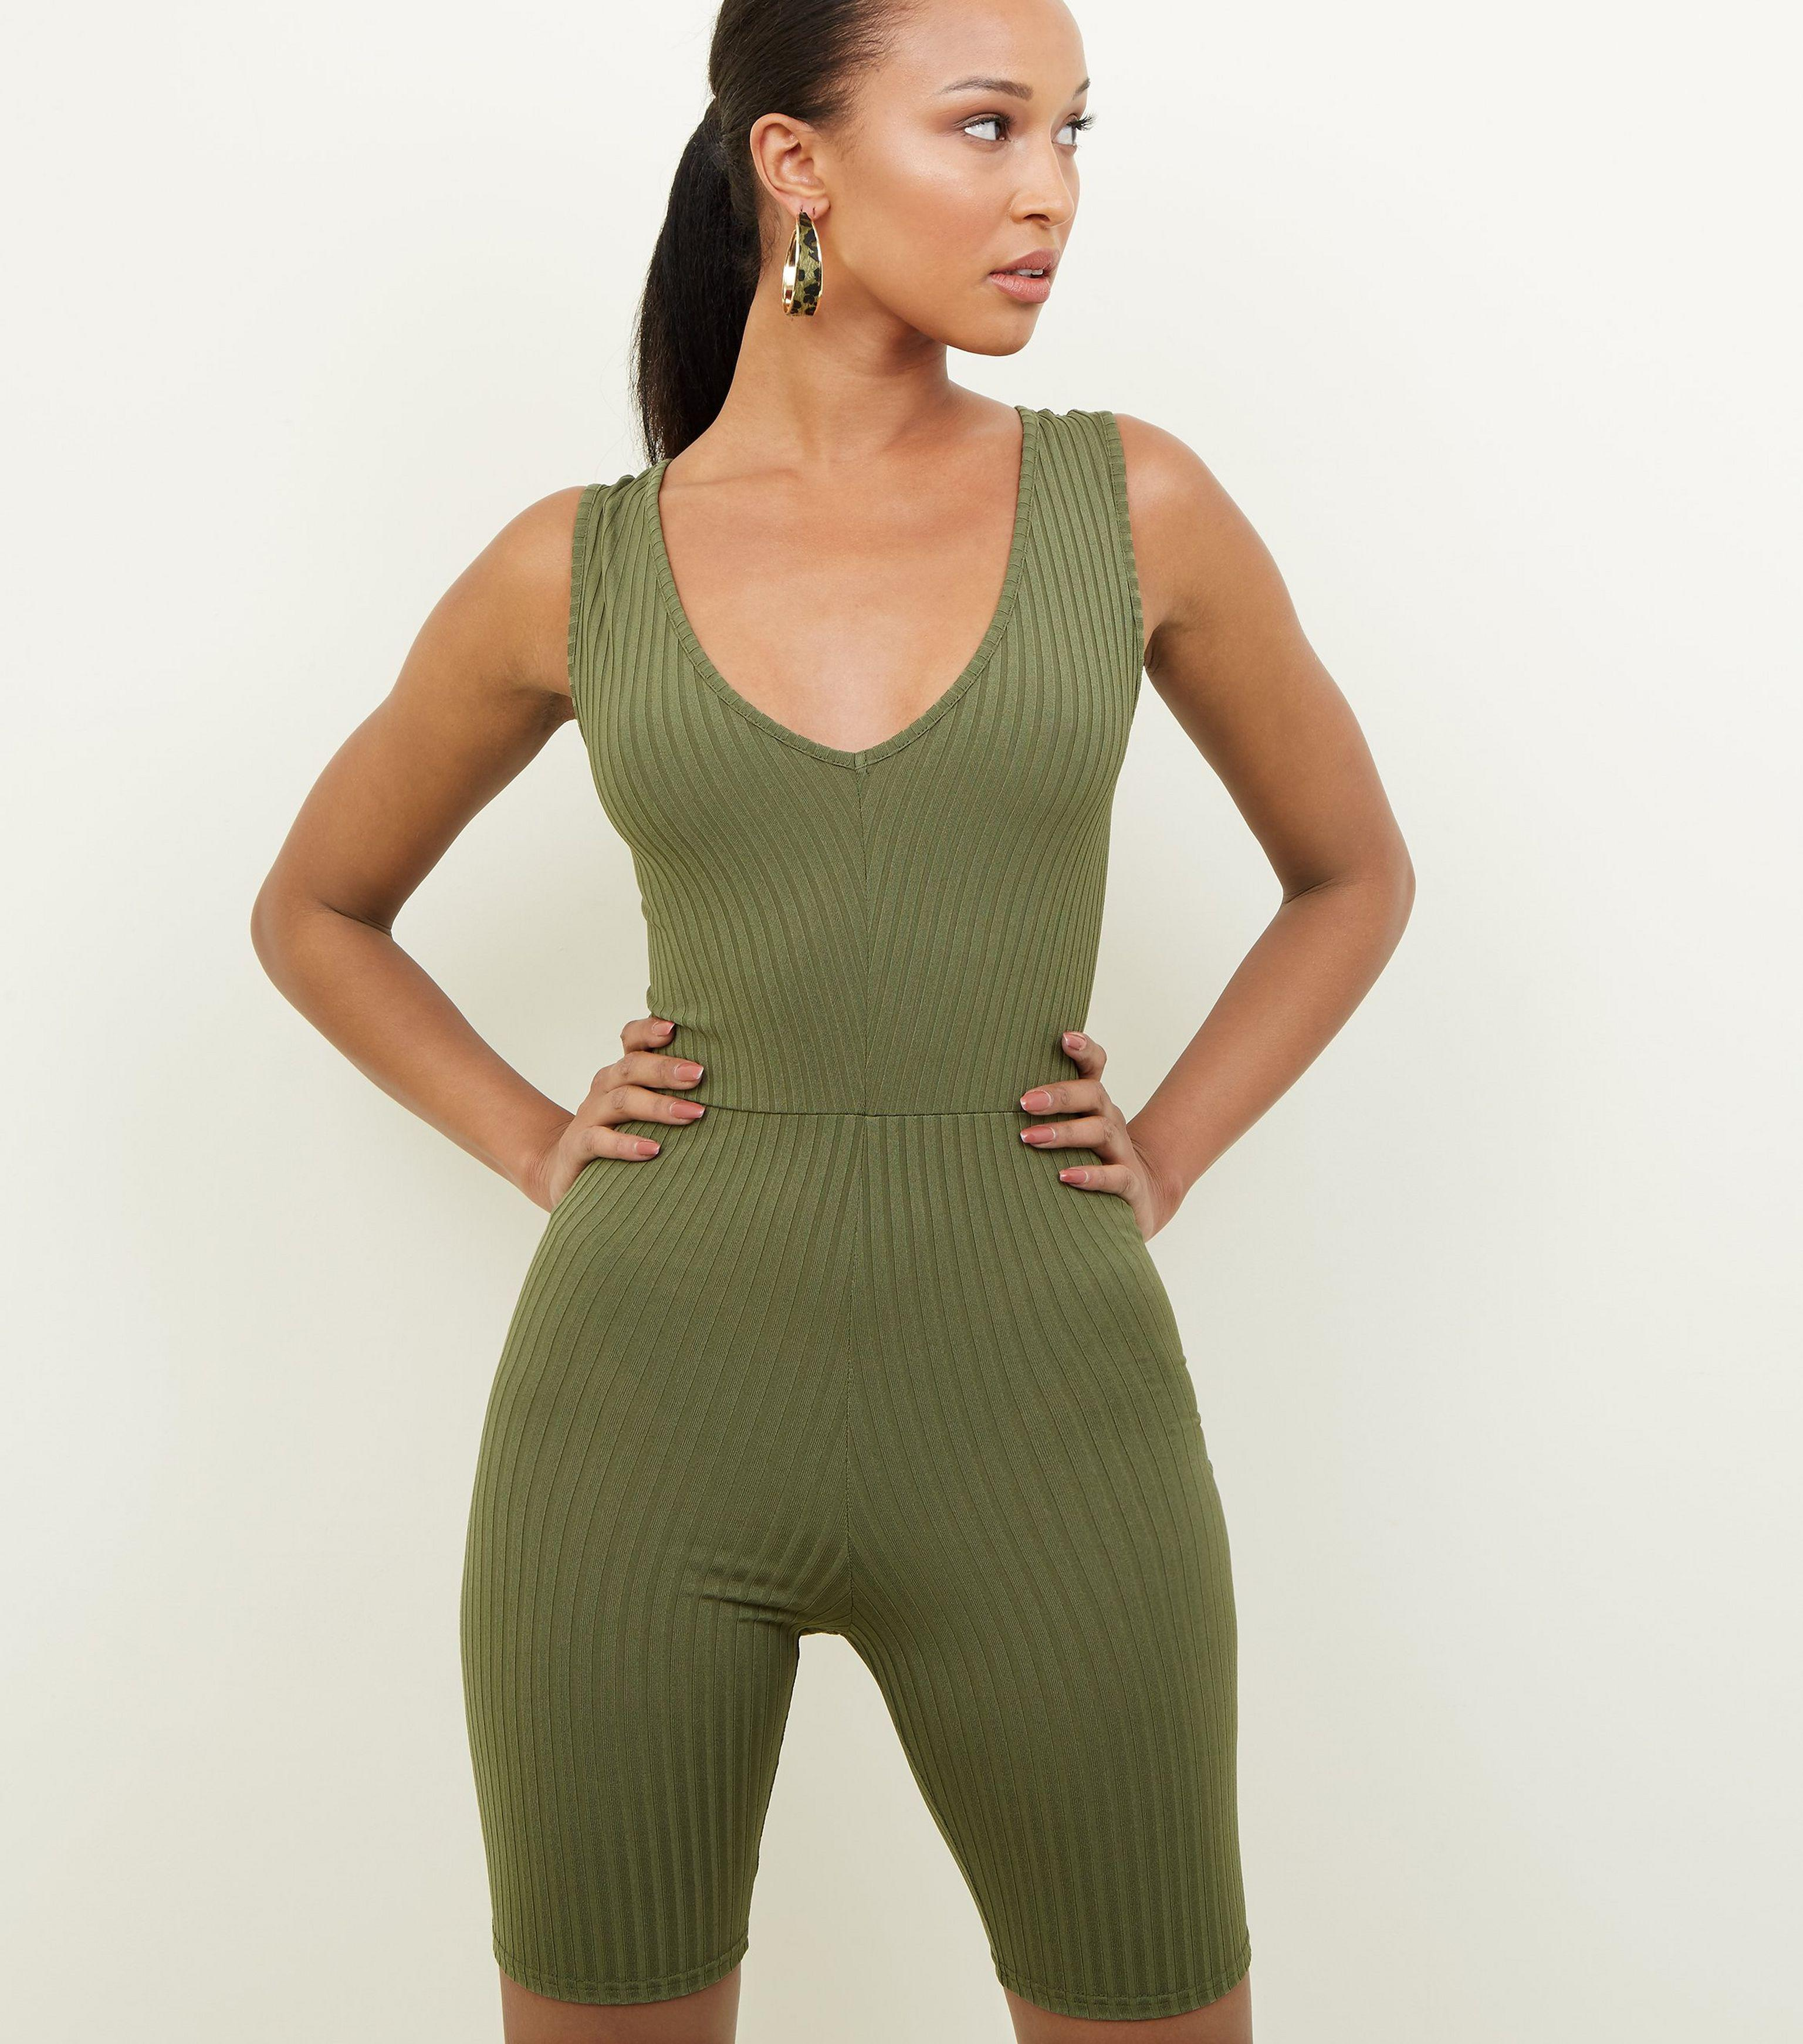 45dc4e7821db New Look Khaki Ribbed Cycling Unitard Playsuit in Green - Lyst